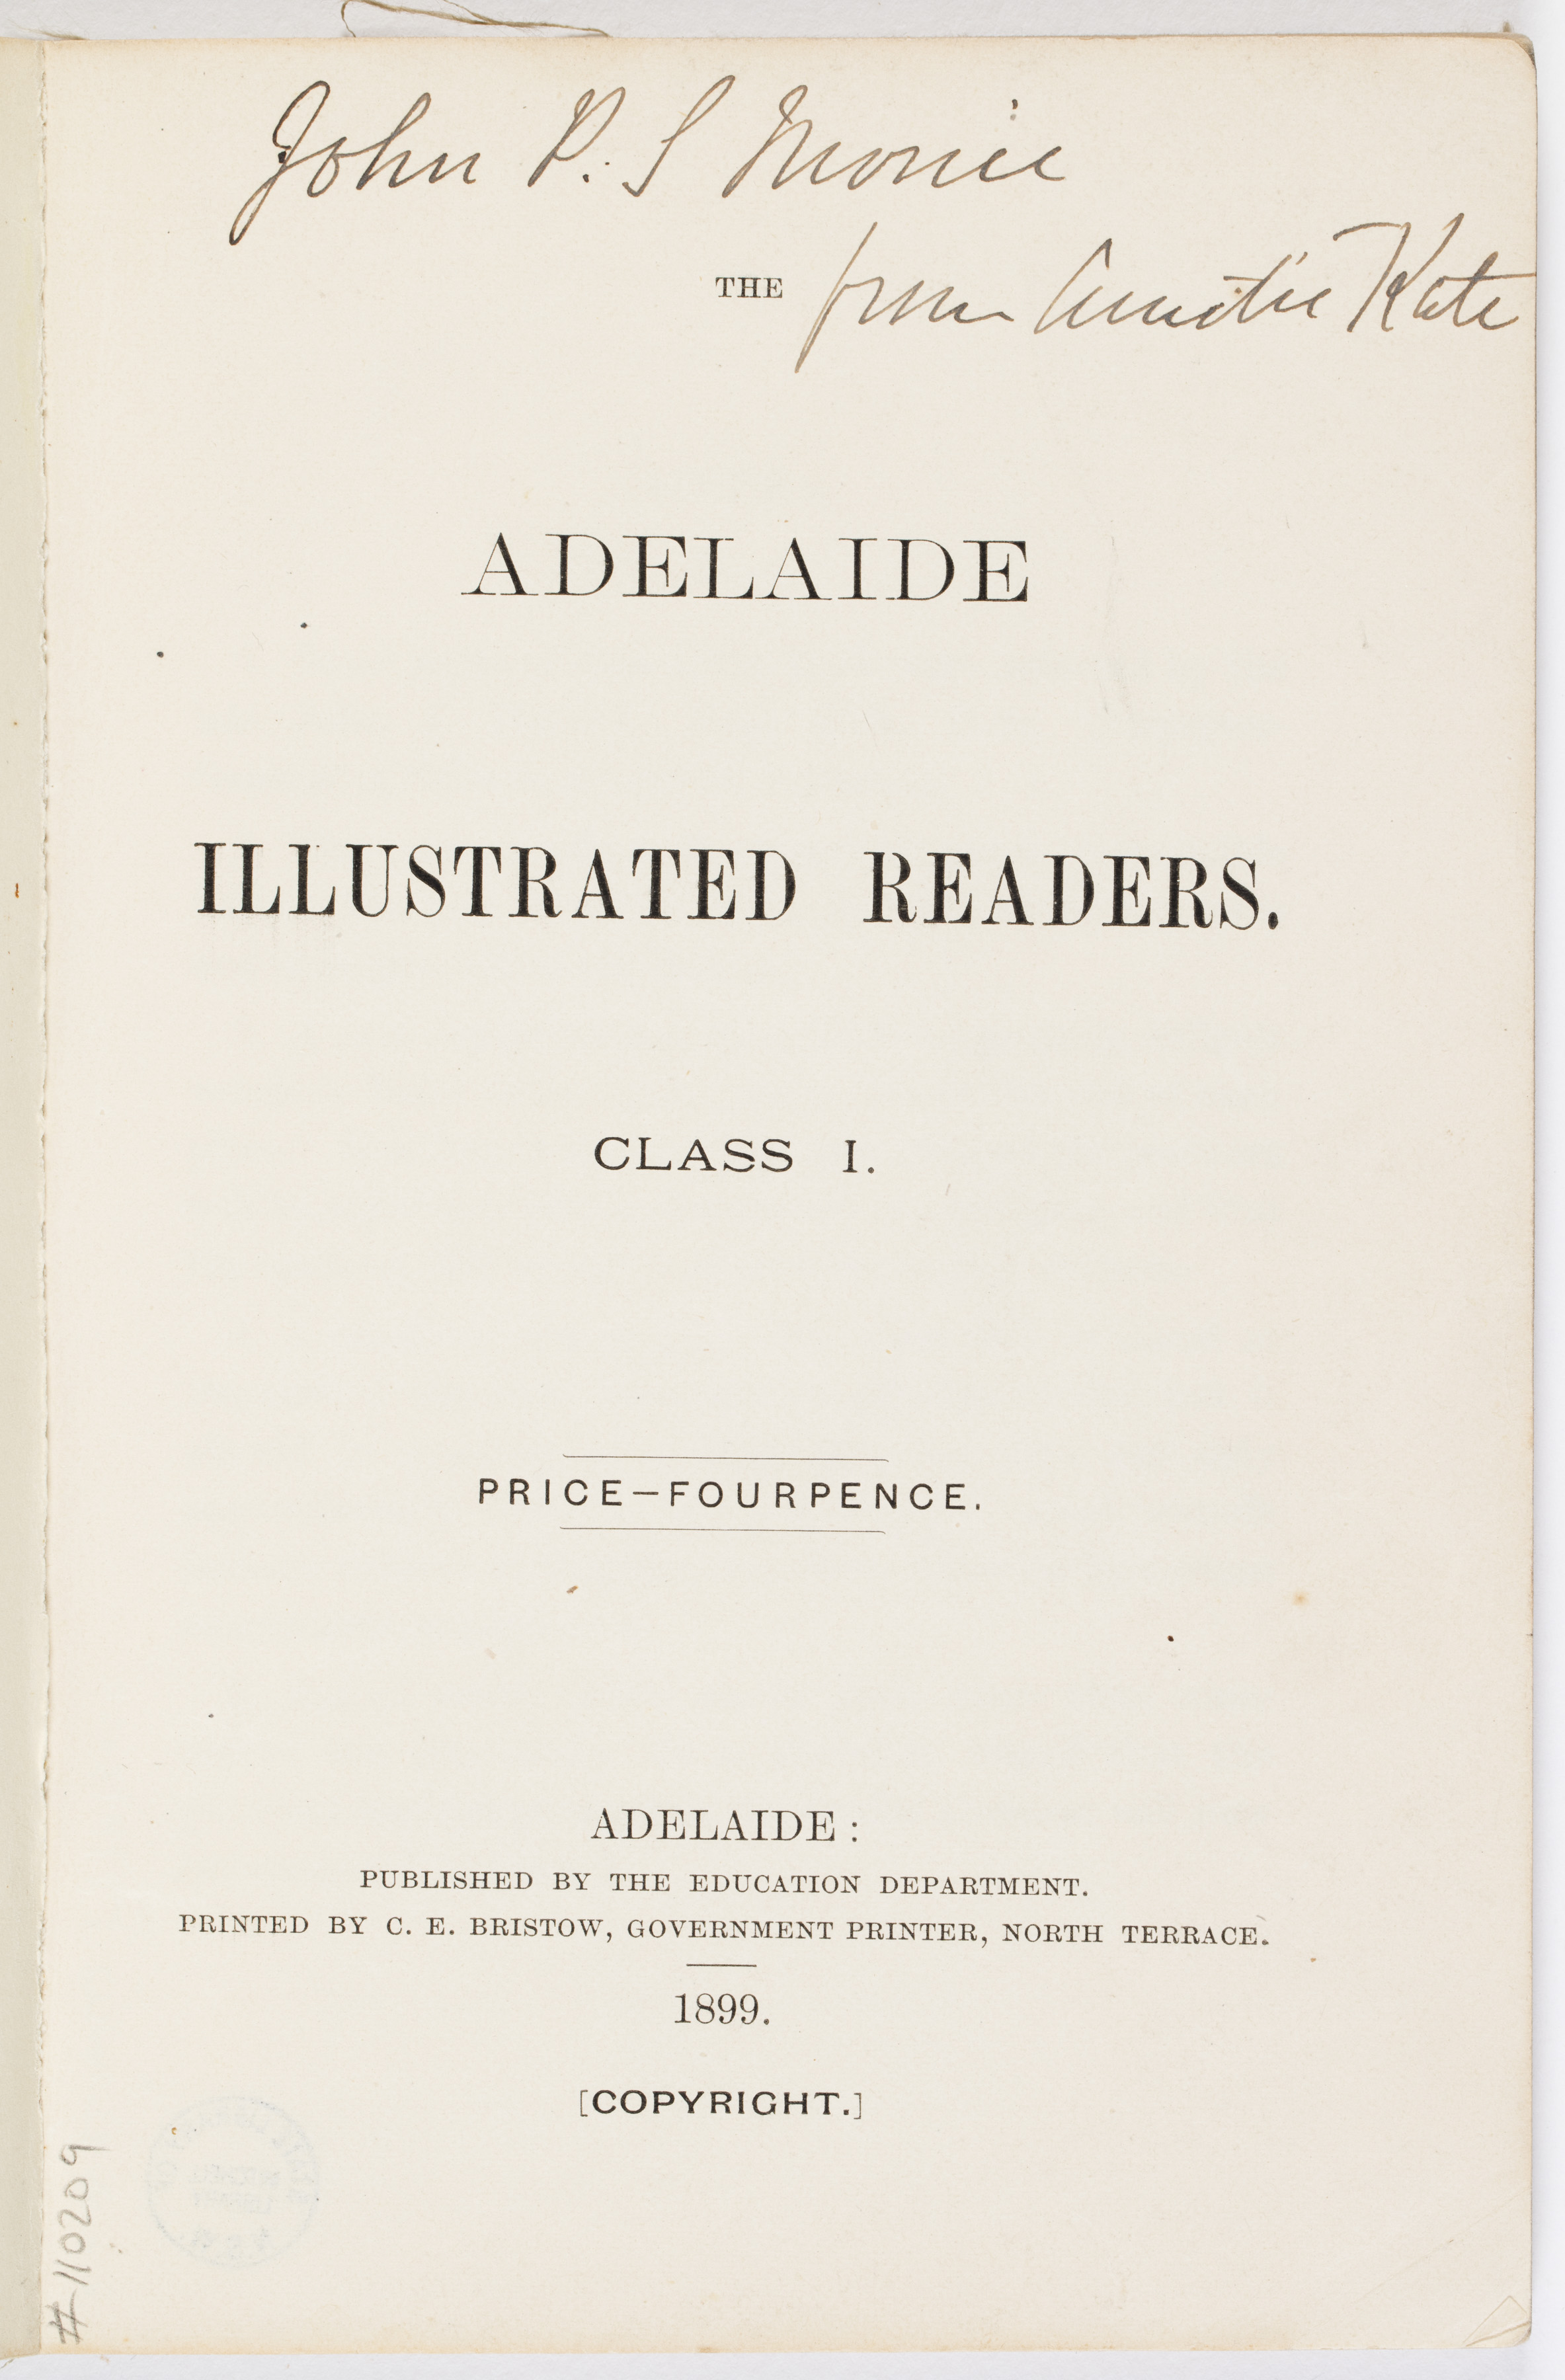 Image of the Adelaide Illustrated Readers